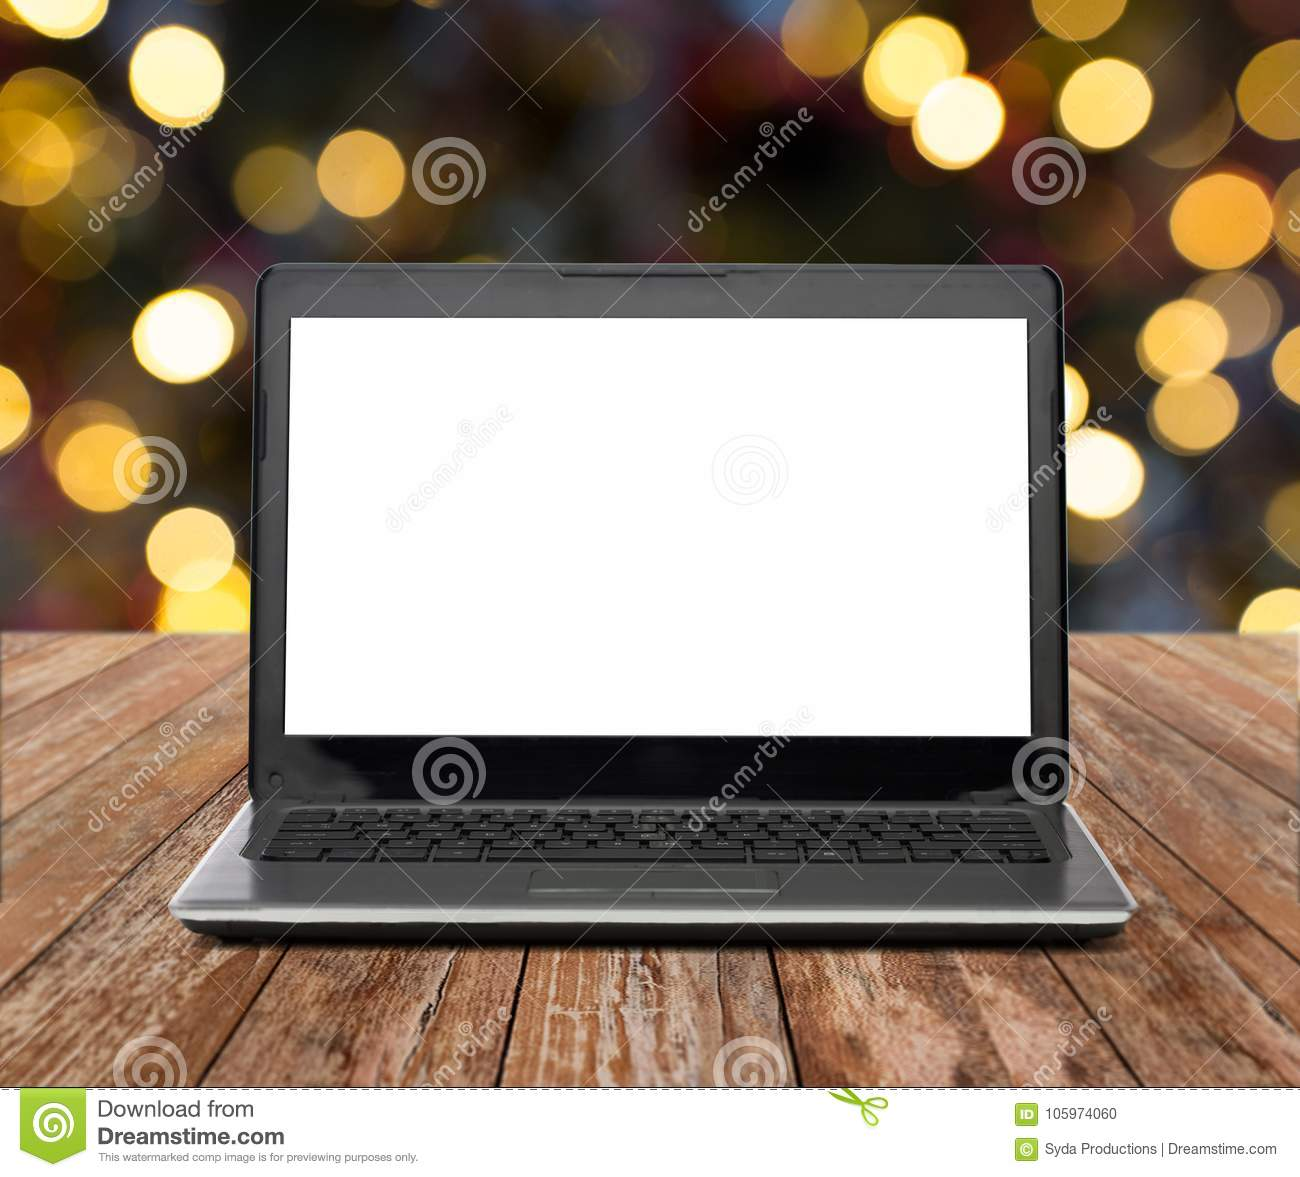 technology and advertisement concept laptop computer with blank white screen on wooden table over christmas lights background